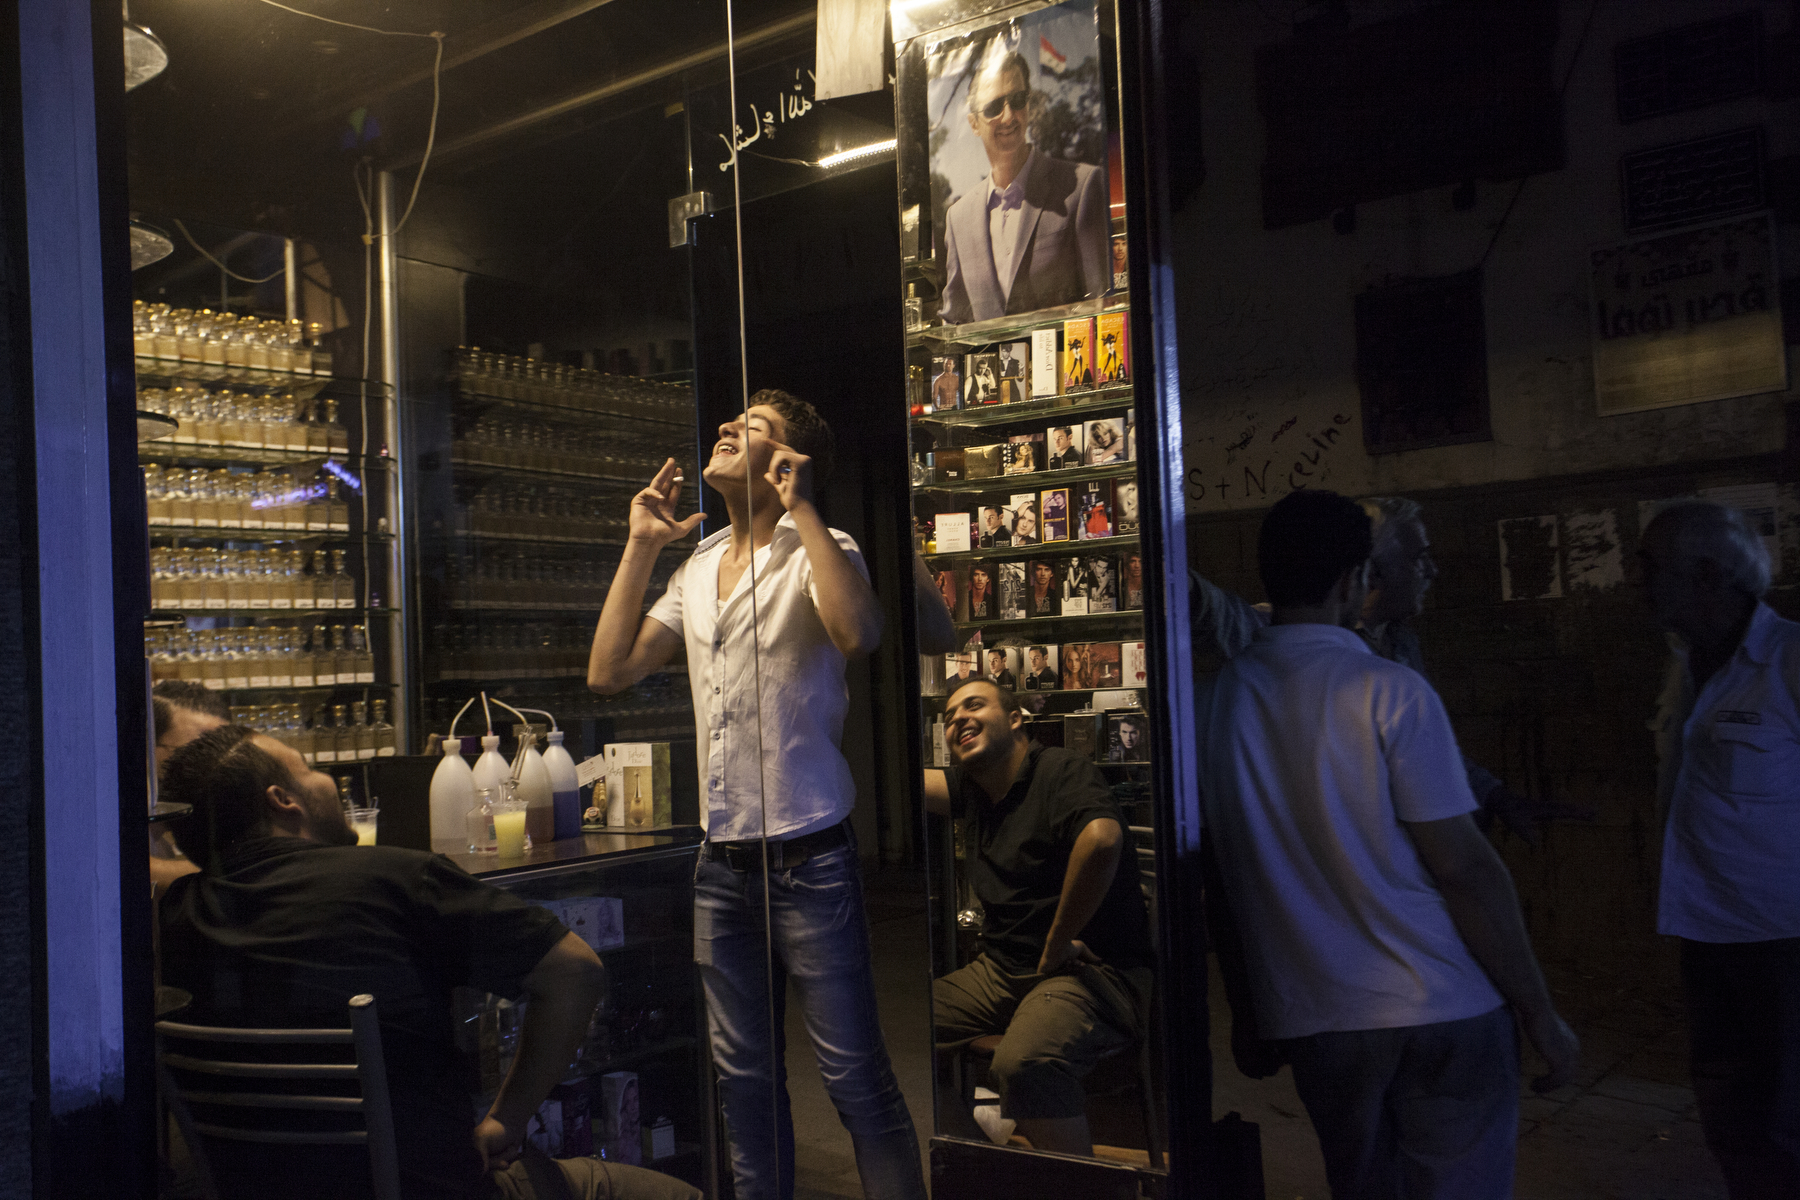 Damascus, 2015, Men hang out in a shop in the Old City of Damascus.